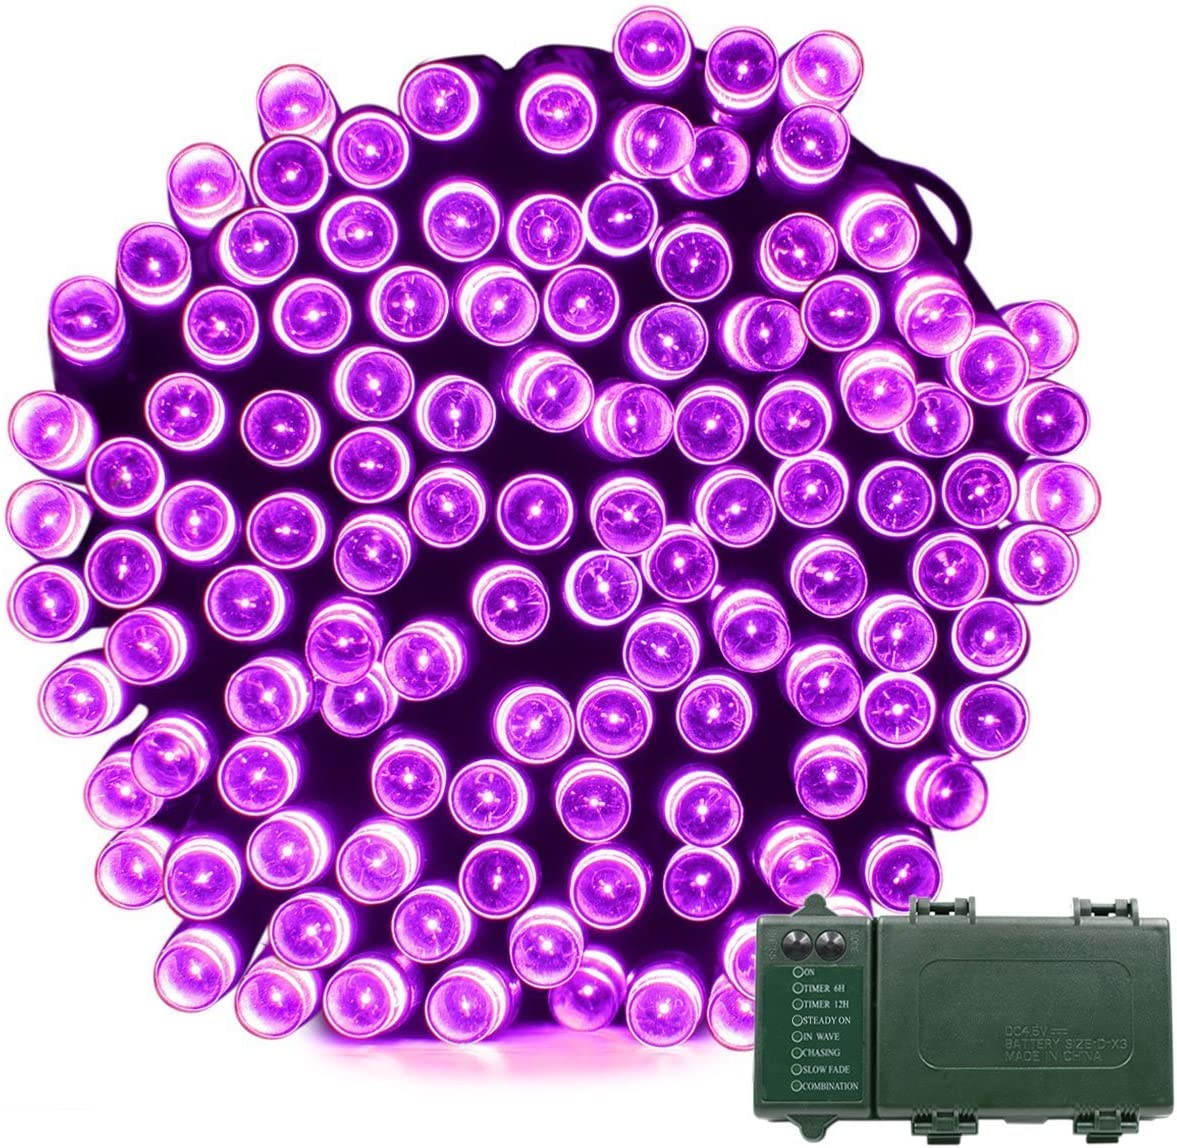 Vmanoo Christmas Lights, Battery 72ft 200 LED, String Lights for Outdoor, Indoor, Garden, Patio, Holiday Party, Wedding Xmas Decorations Purple